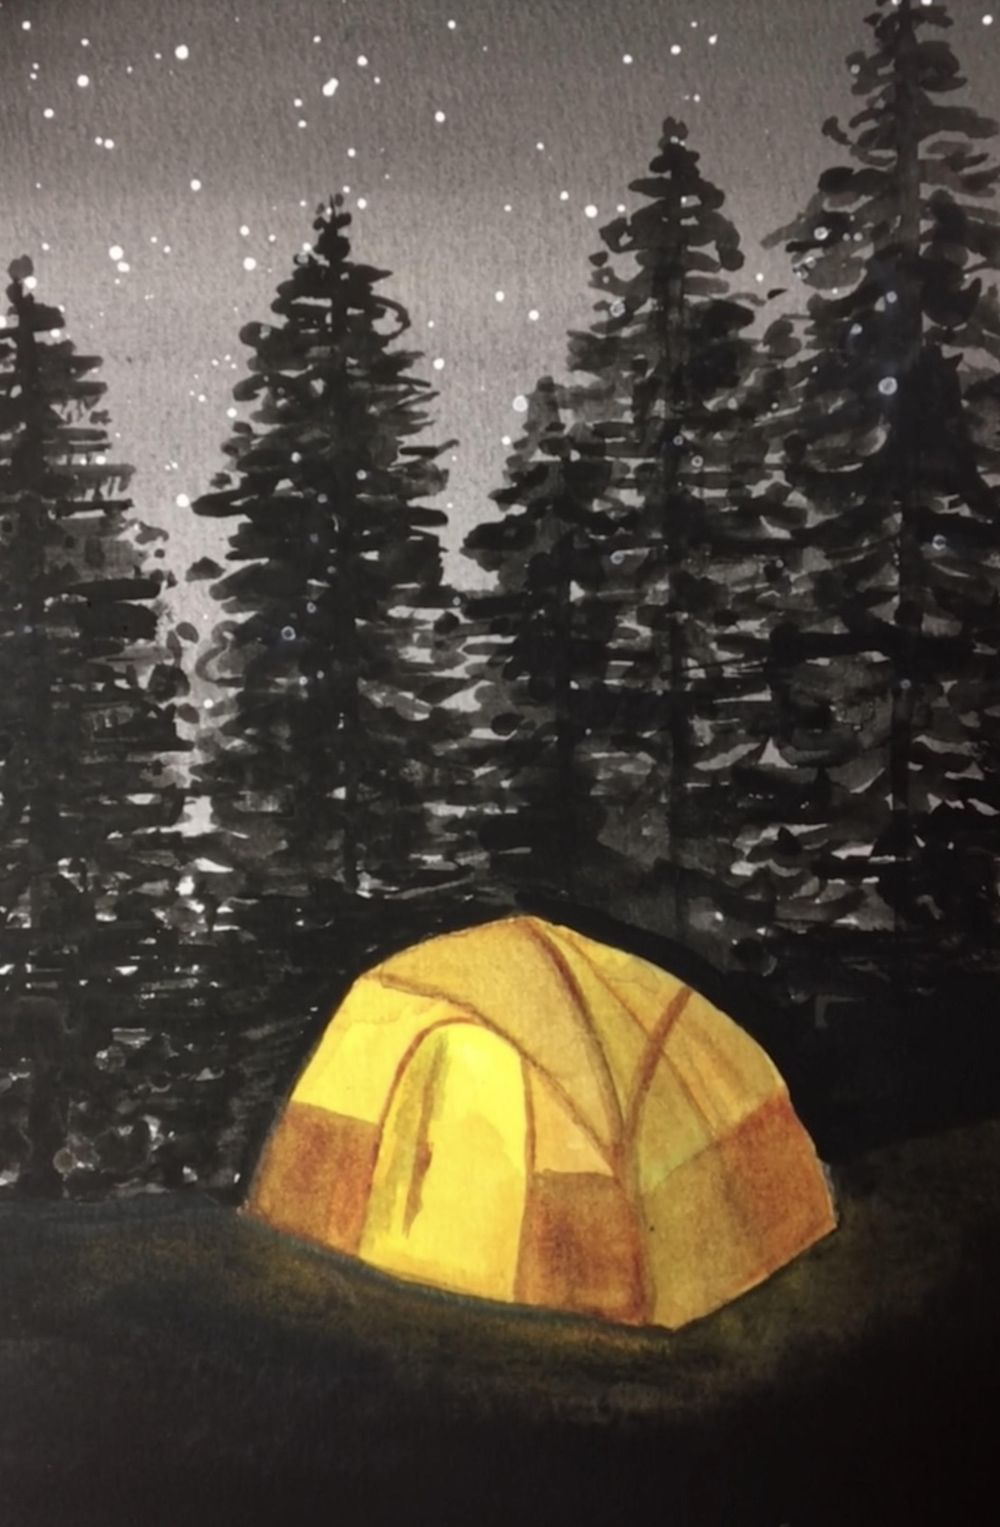 Camping with the Pines - image 1 - student project